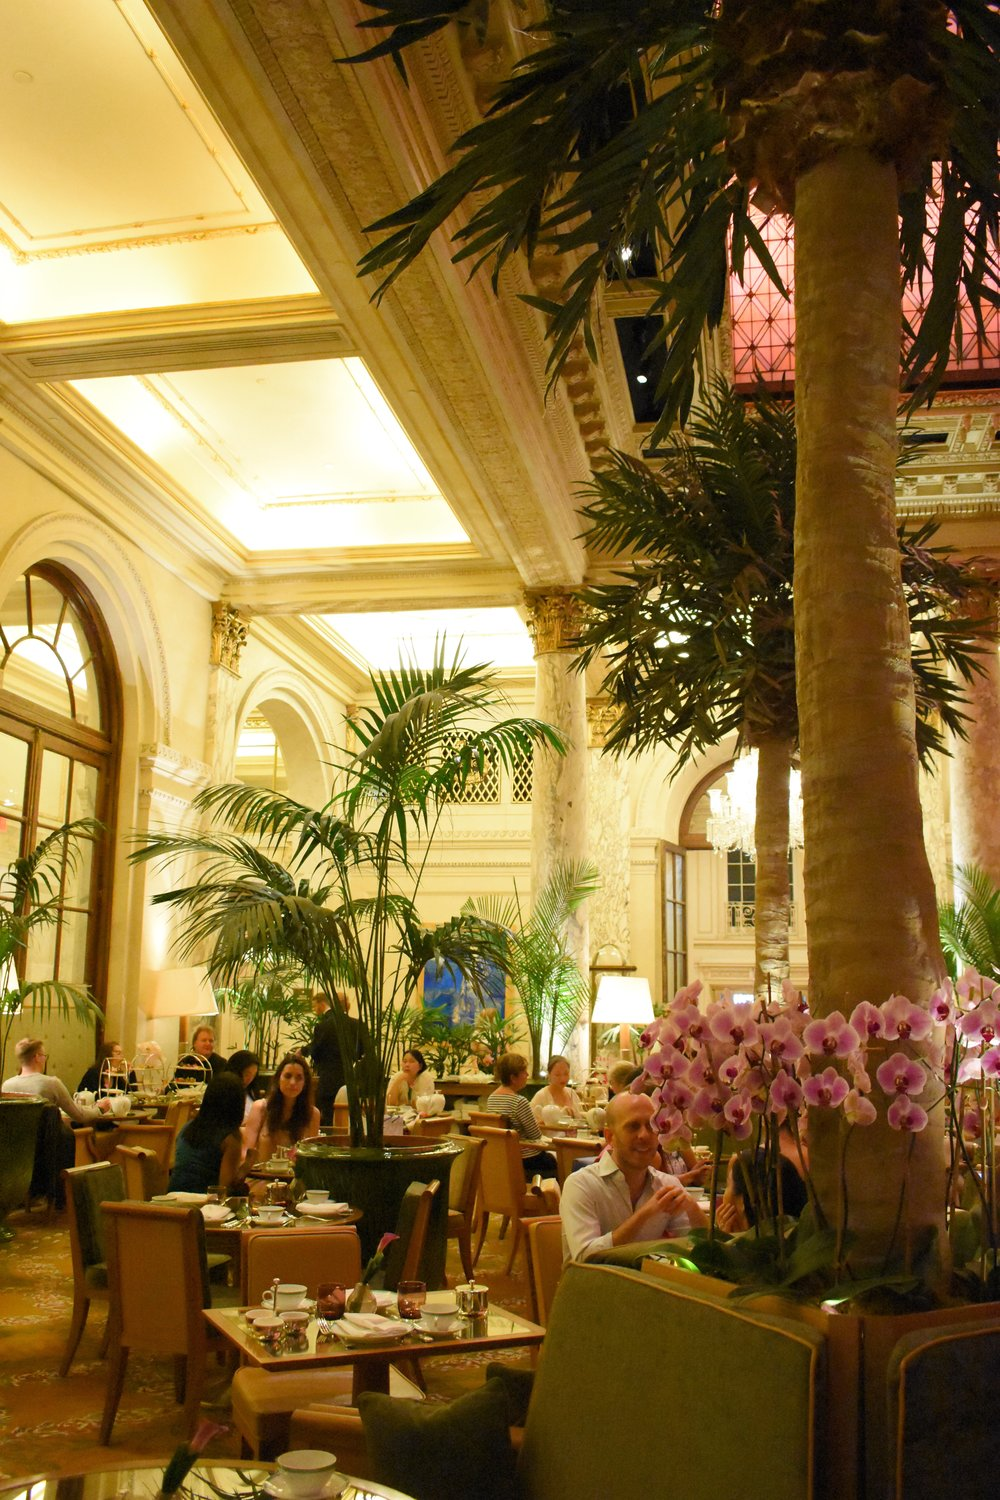 A view of the palms at the Palm Court.